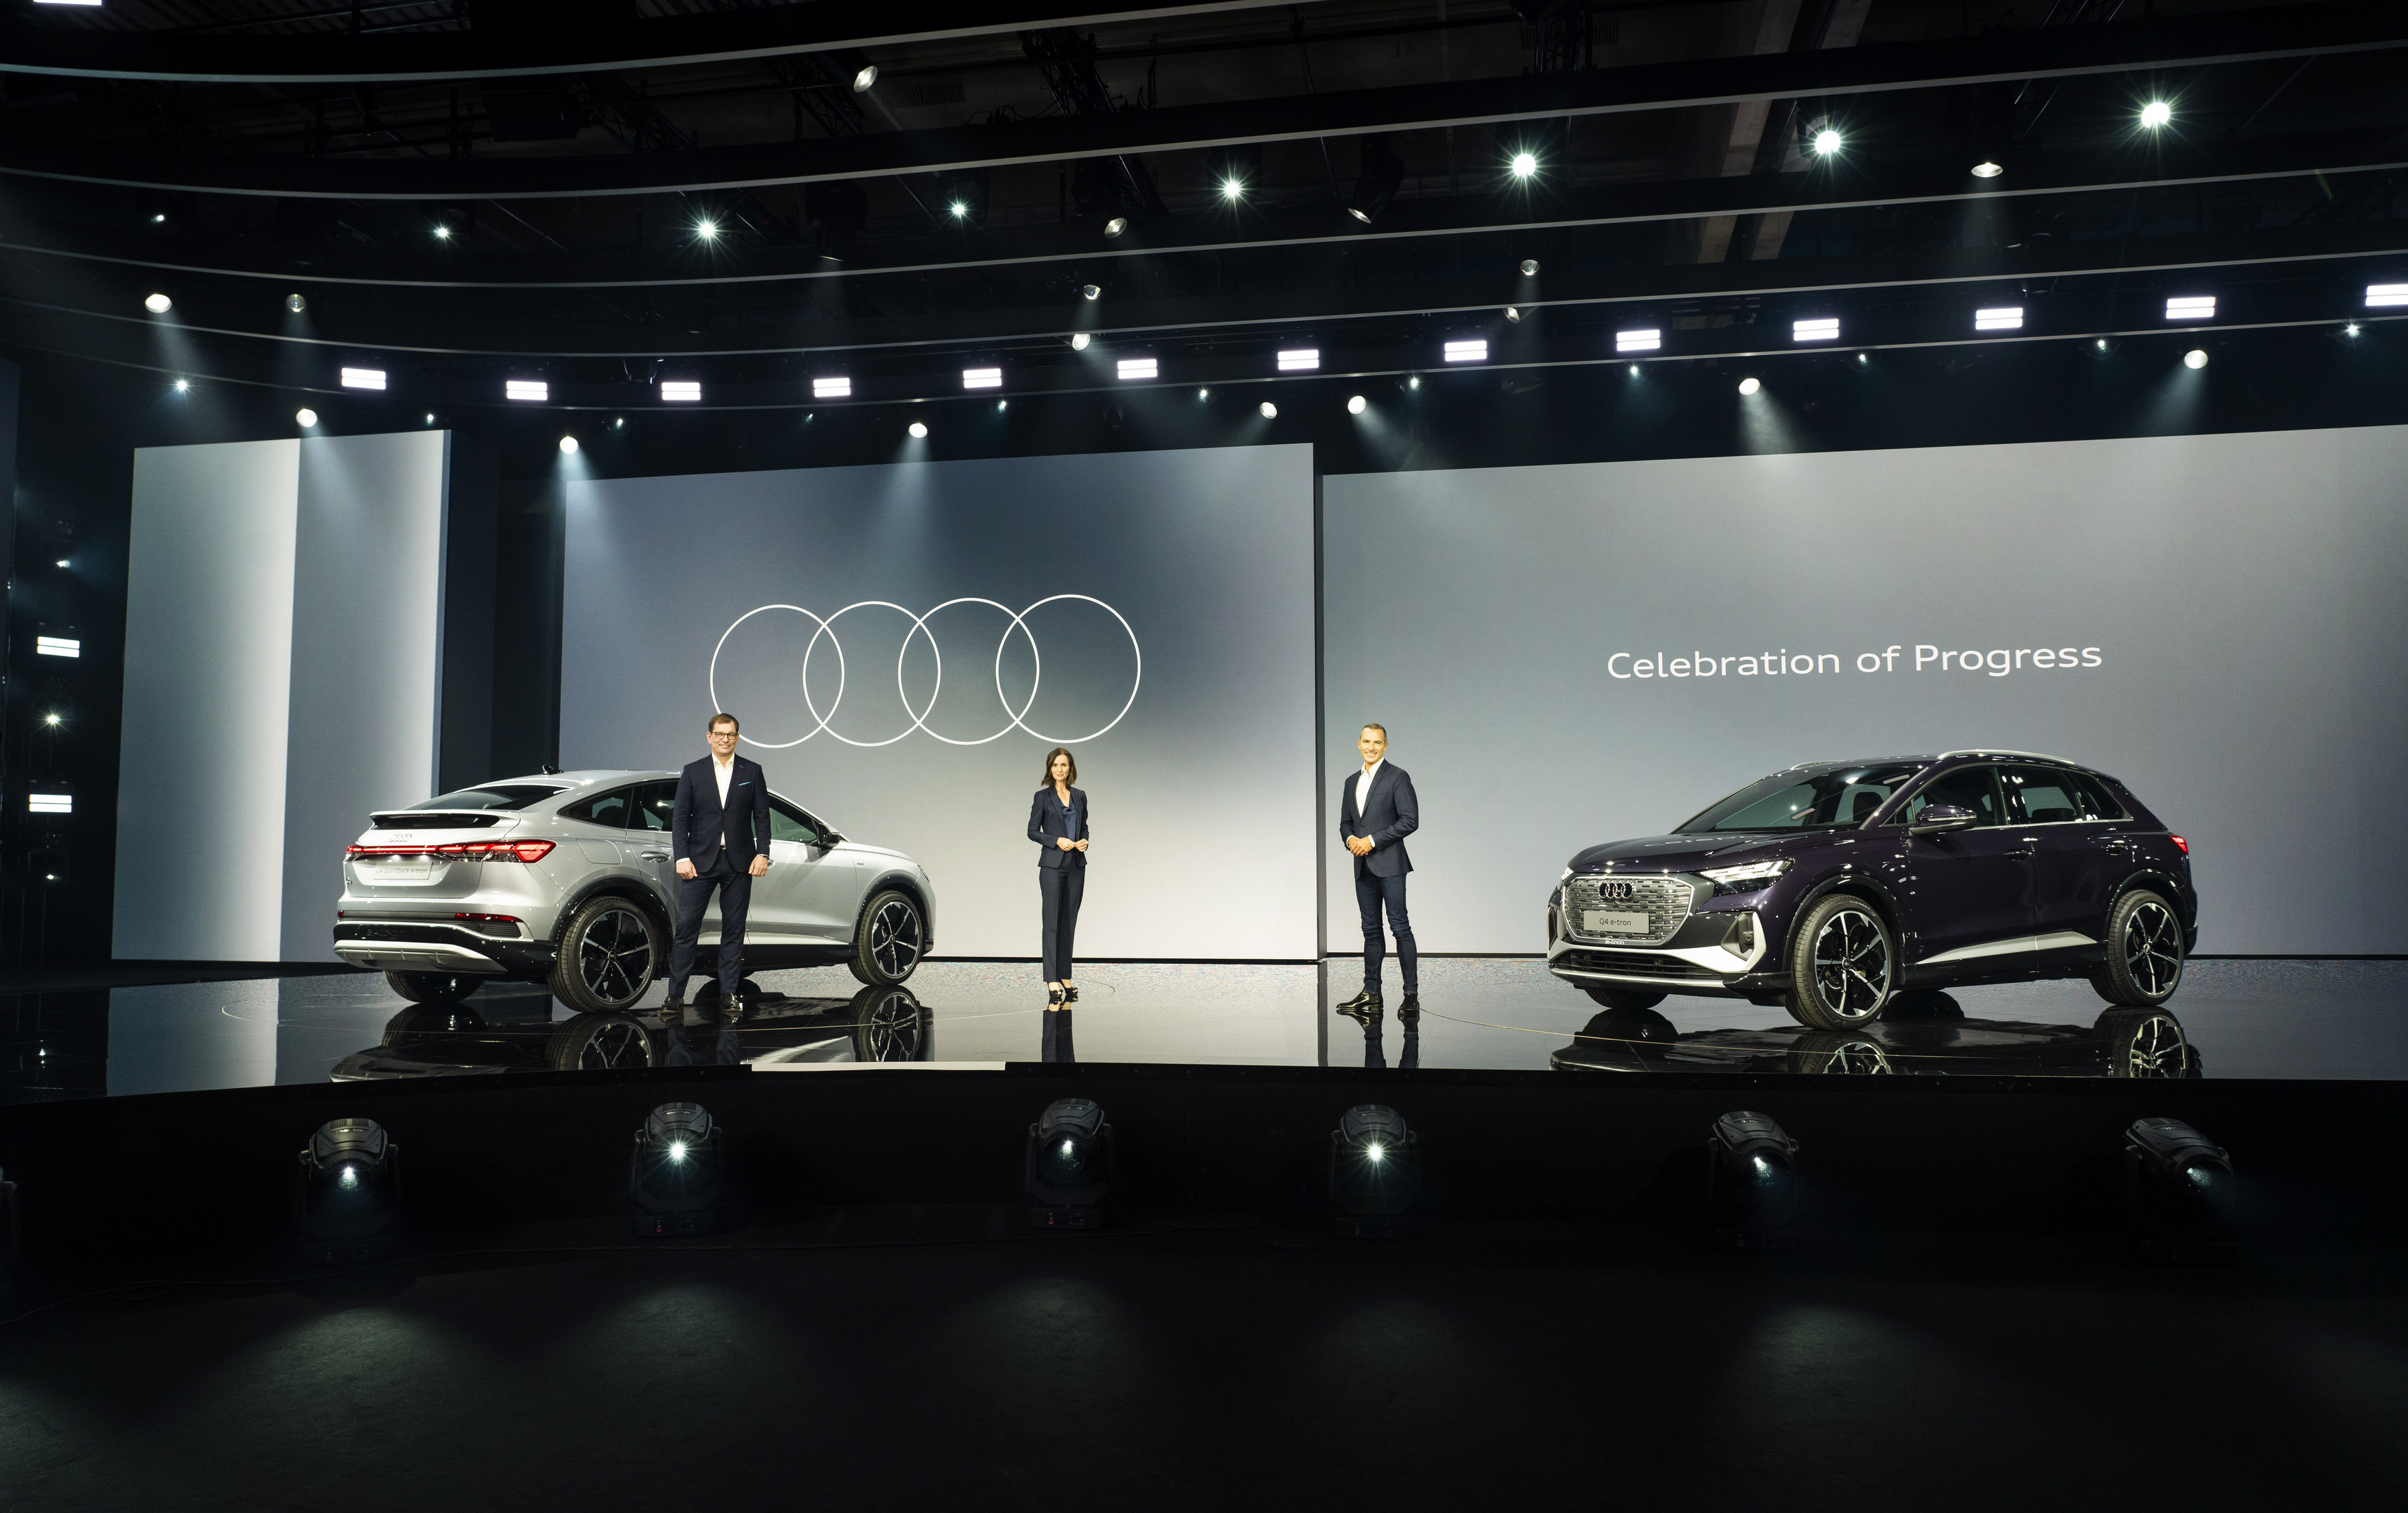 Celebration of Progress: the online world premiere of the Audi Q4 e-tron